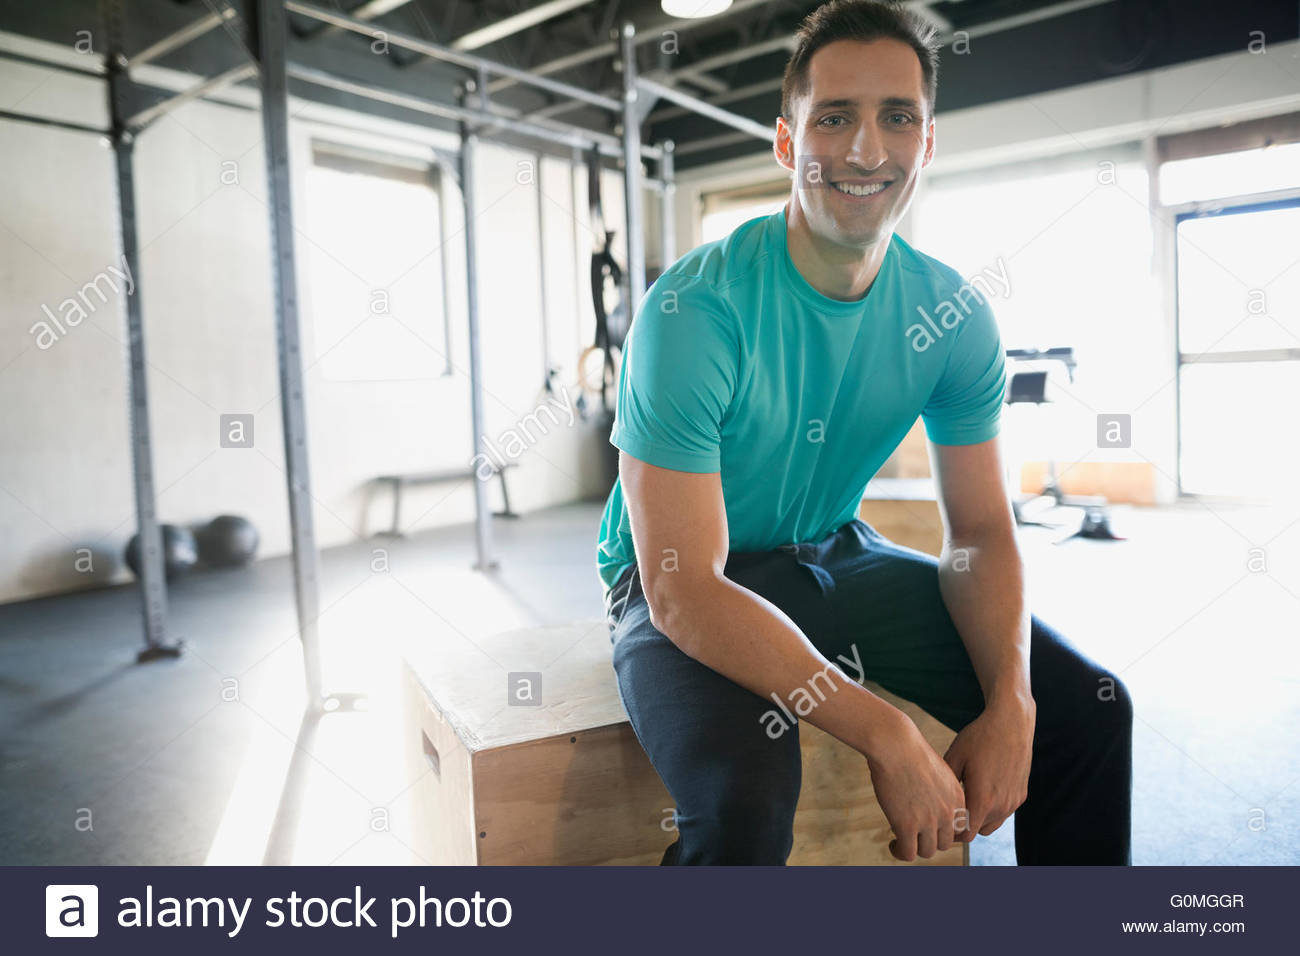 Portrait of smiling man resting at gym Photo Stock